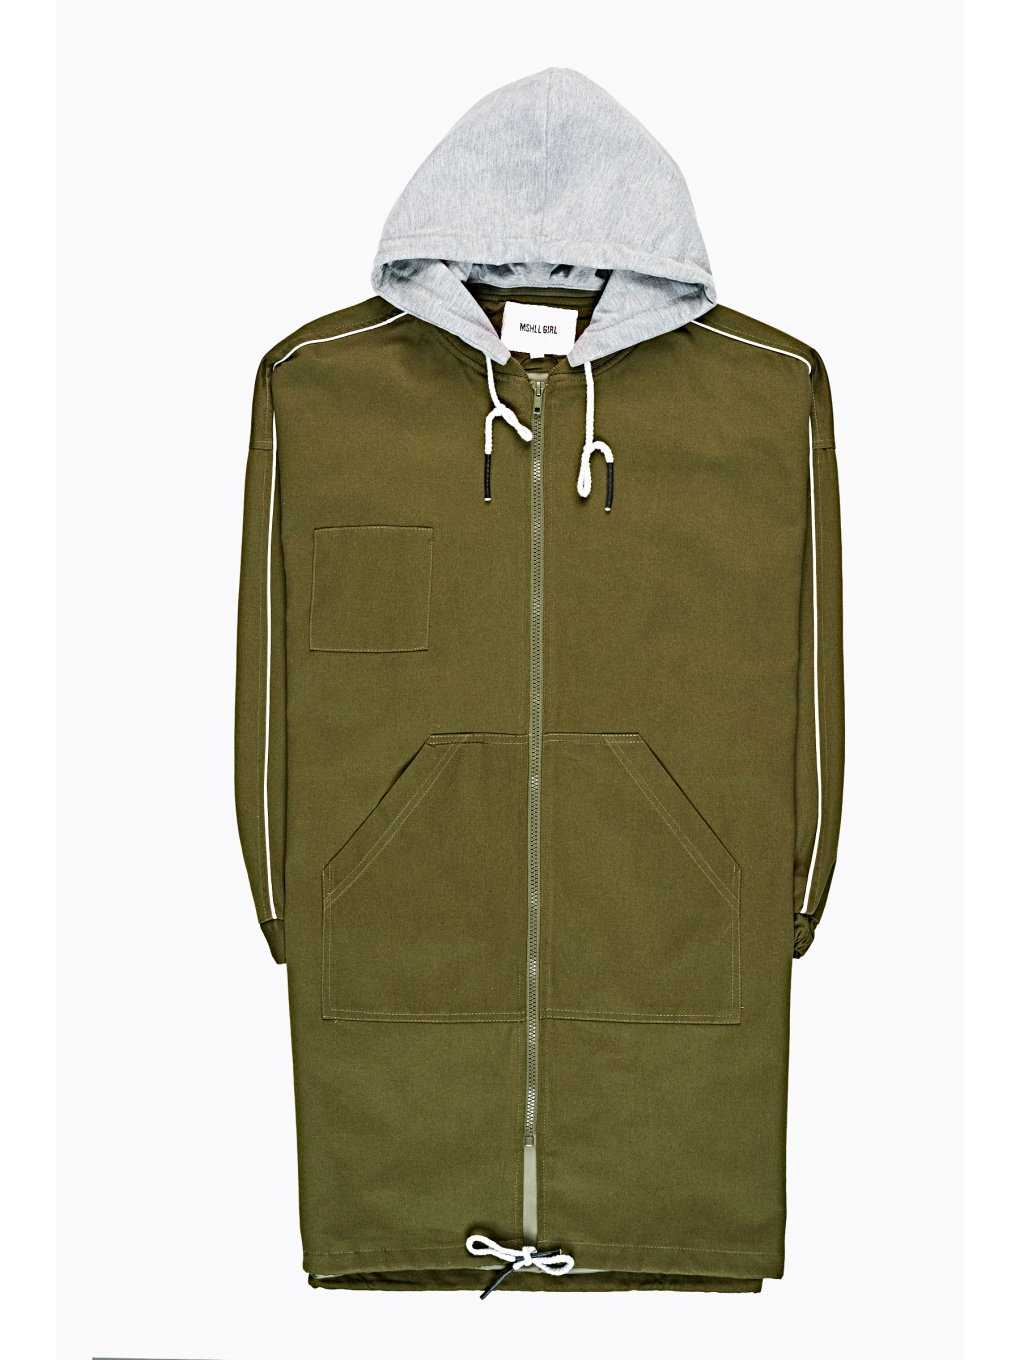 LONGLINE HOODED JACKET WITH MESSAGE PRINT AT BACK